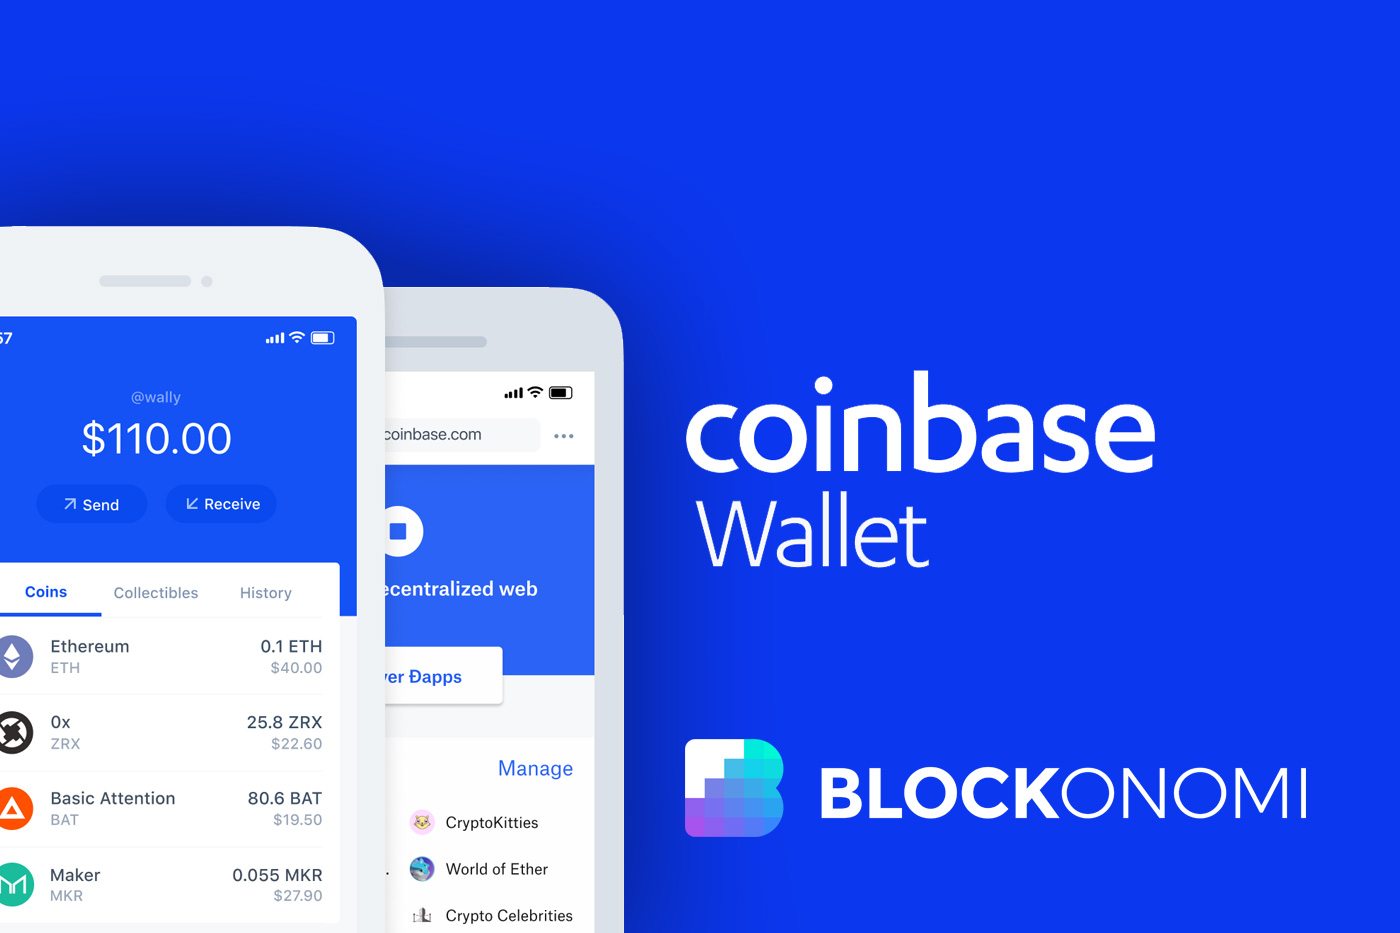 coinbase software wallet